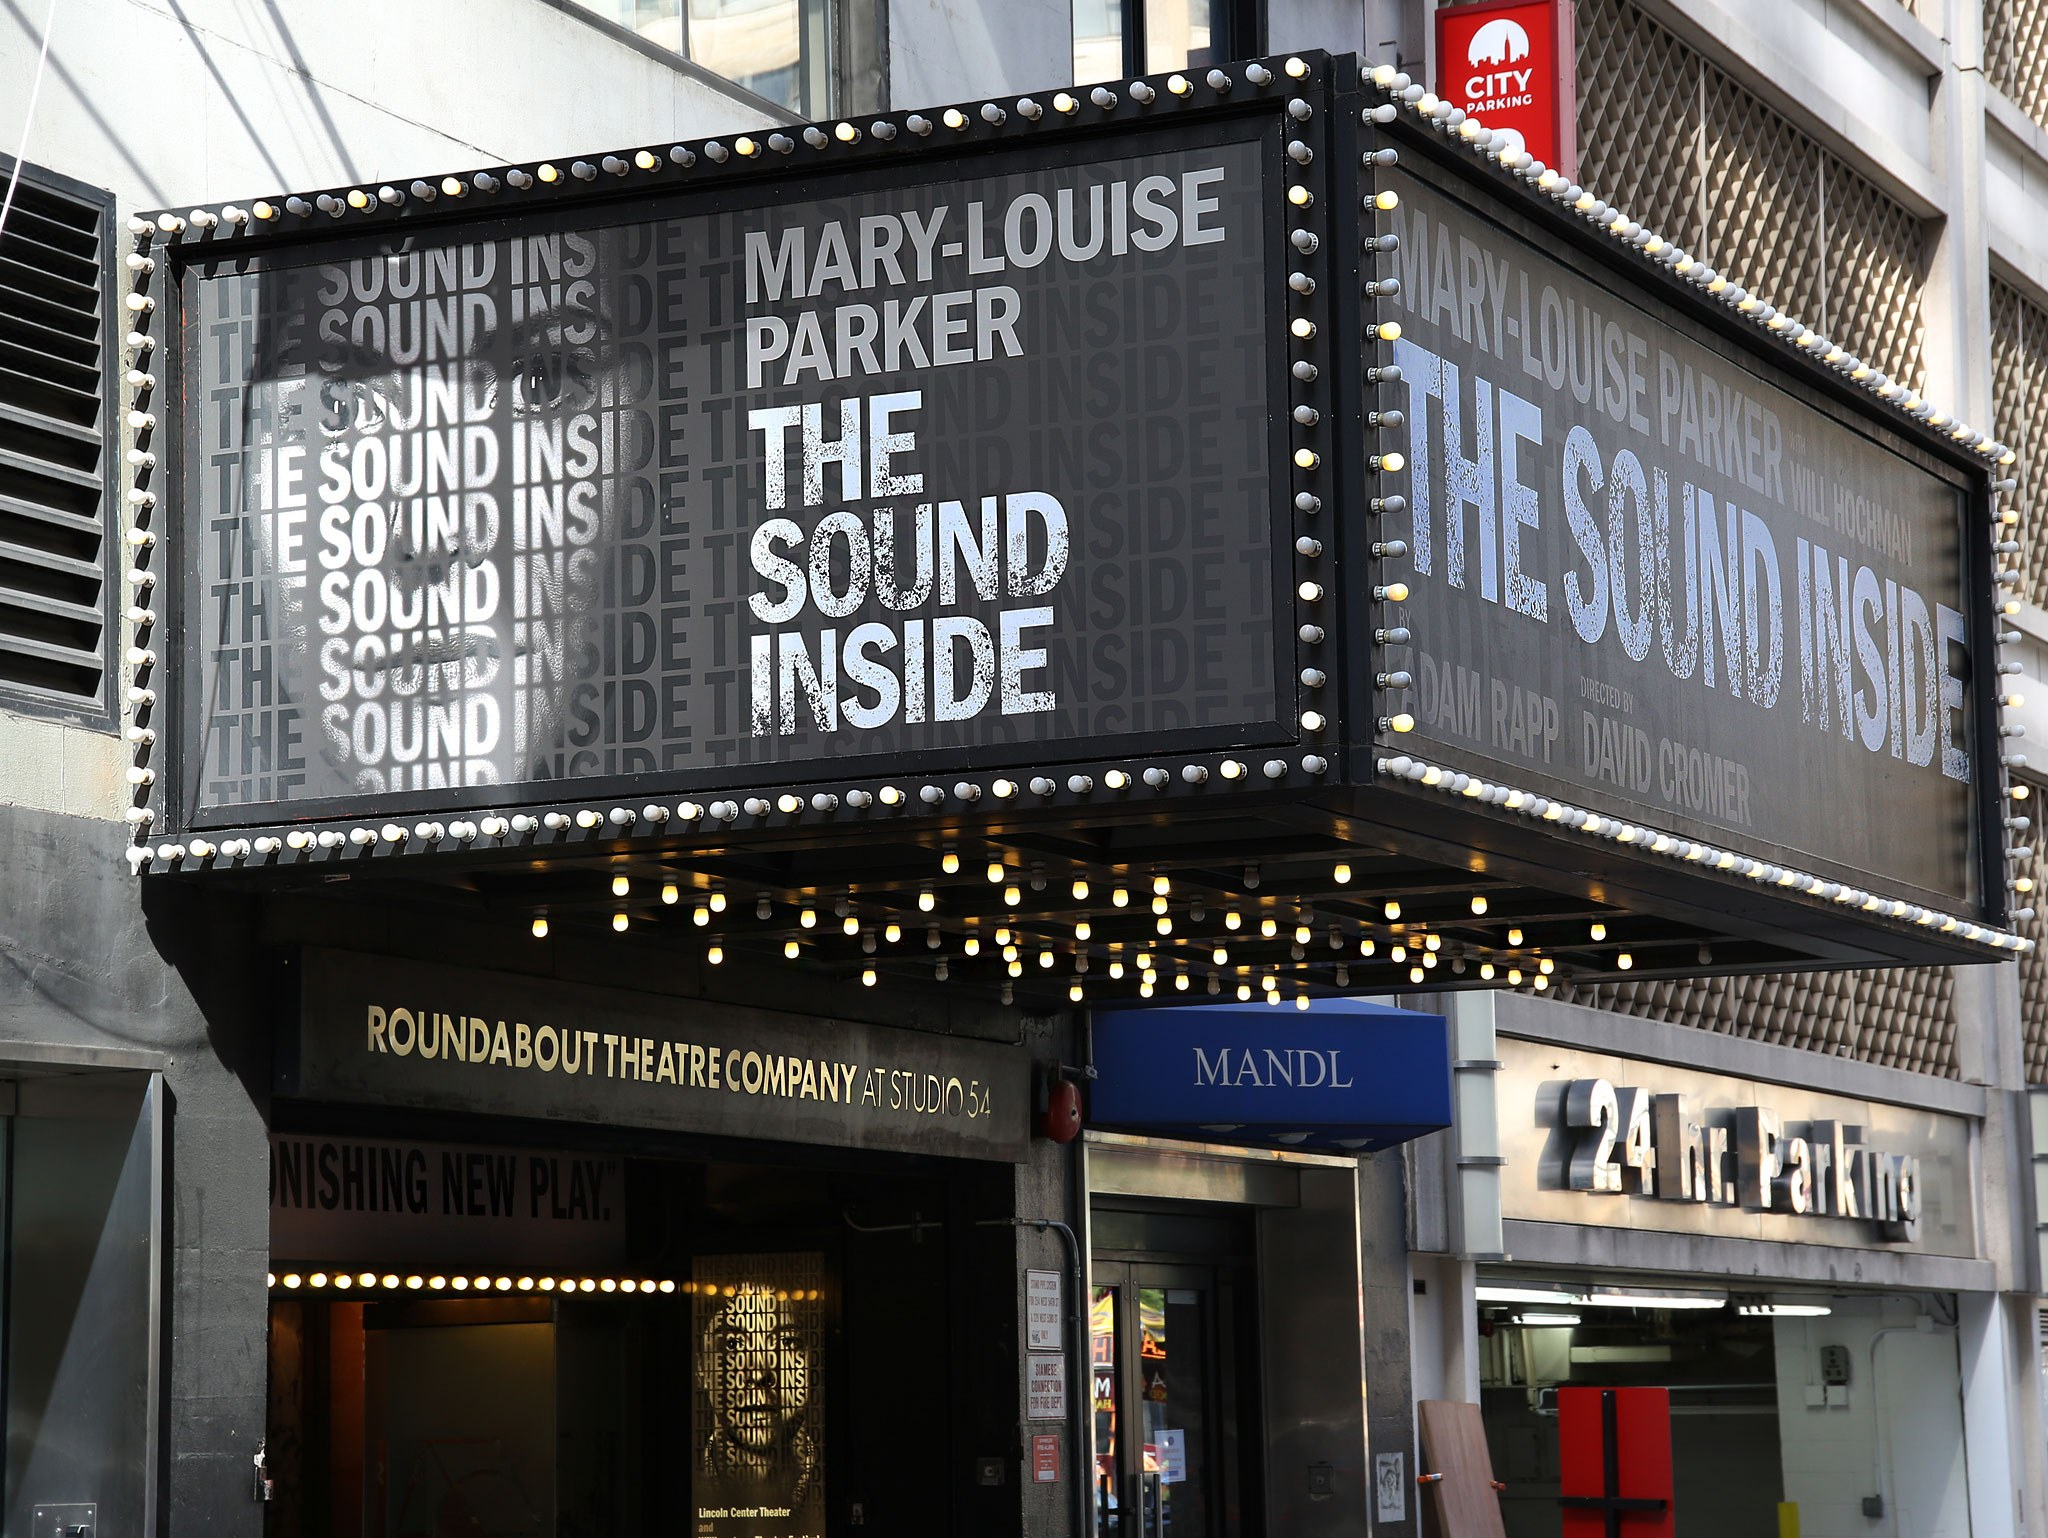 The Sound Inside Theatre Marquee at Studio 54